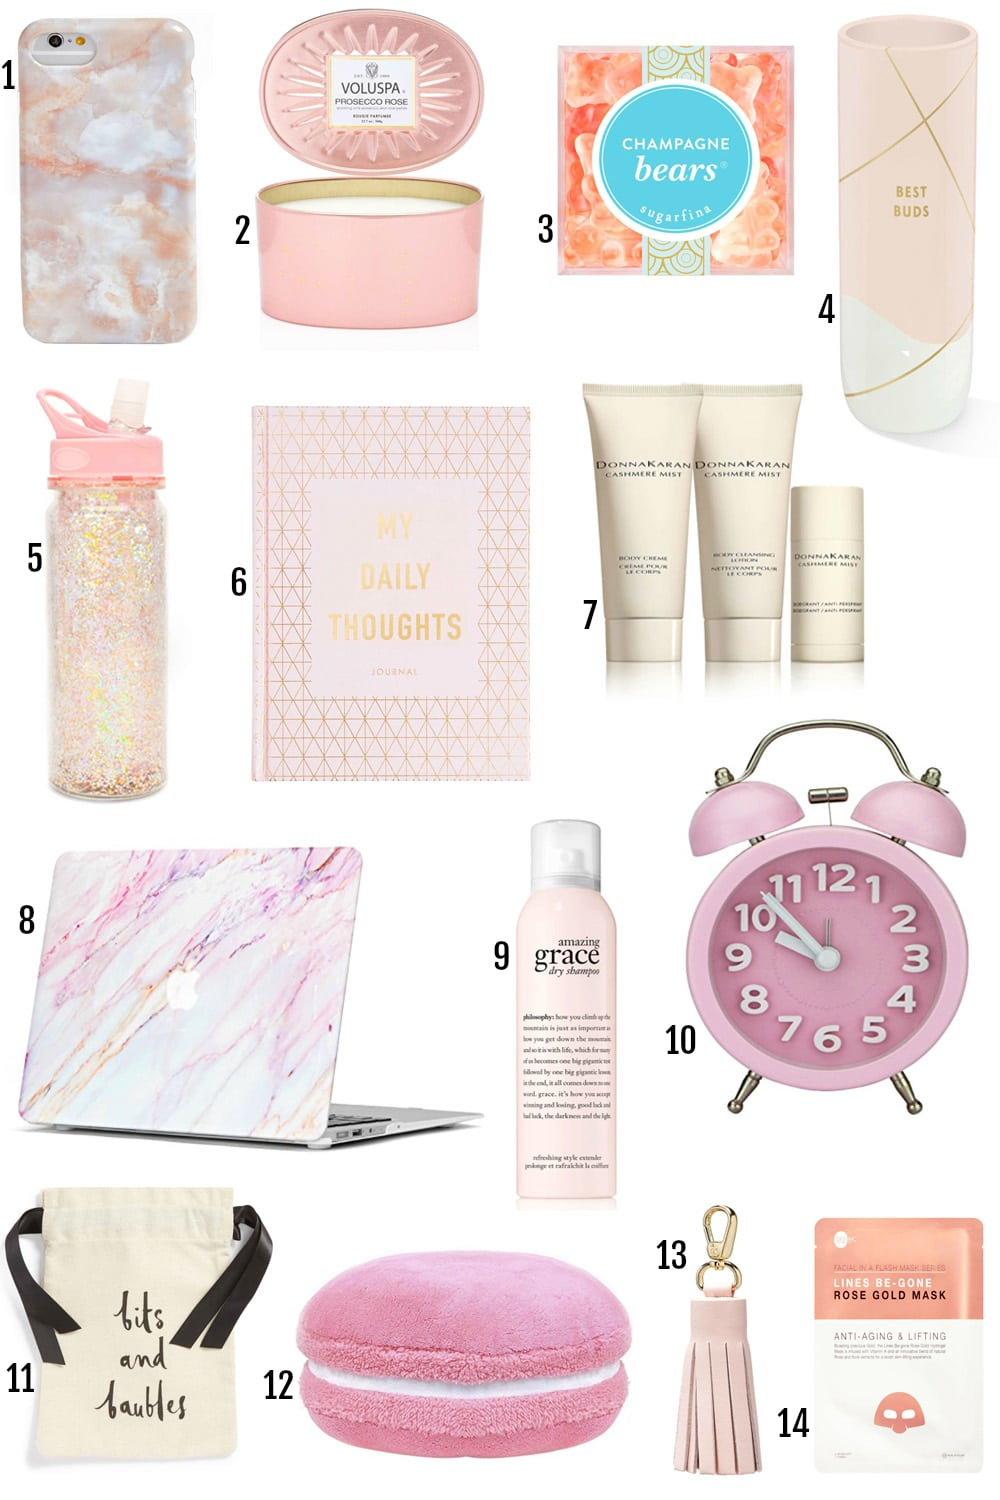 The BEST Gifts For Her Under $25 by popular Orlando style blogger Mash Elle | gifts for social girls | gifts for socialites | gifts for nice girls